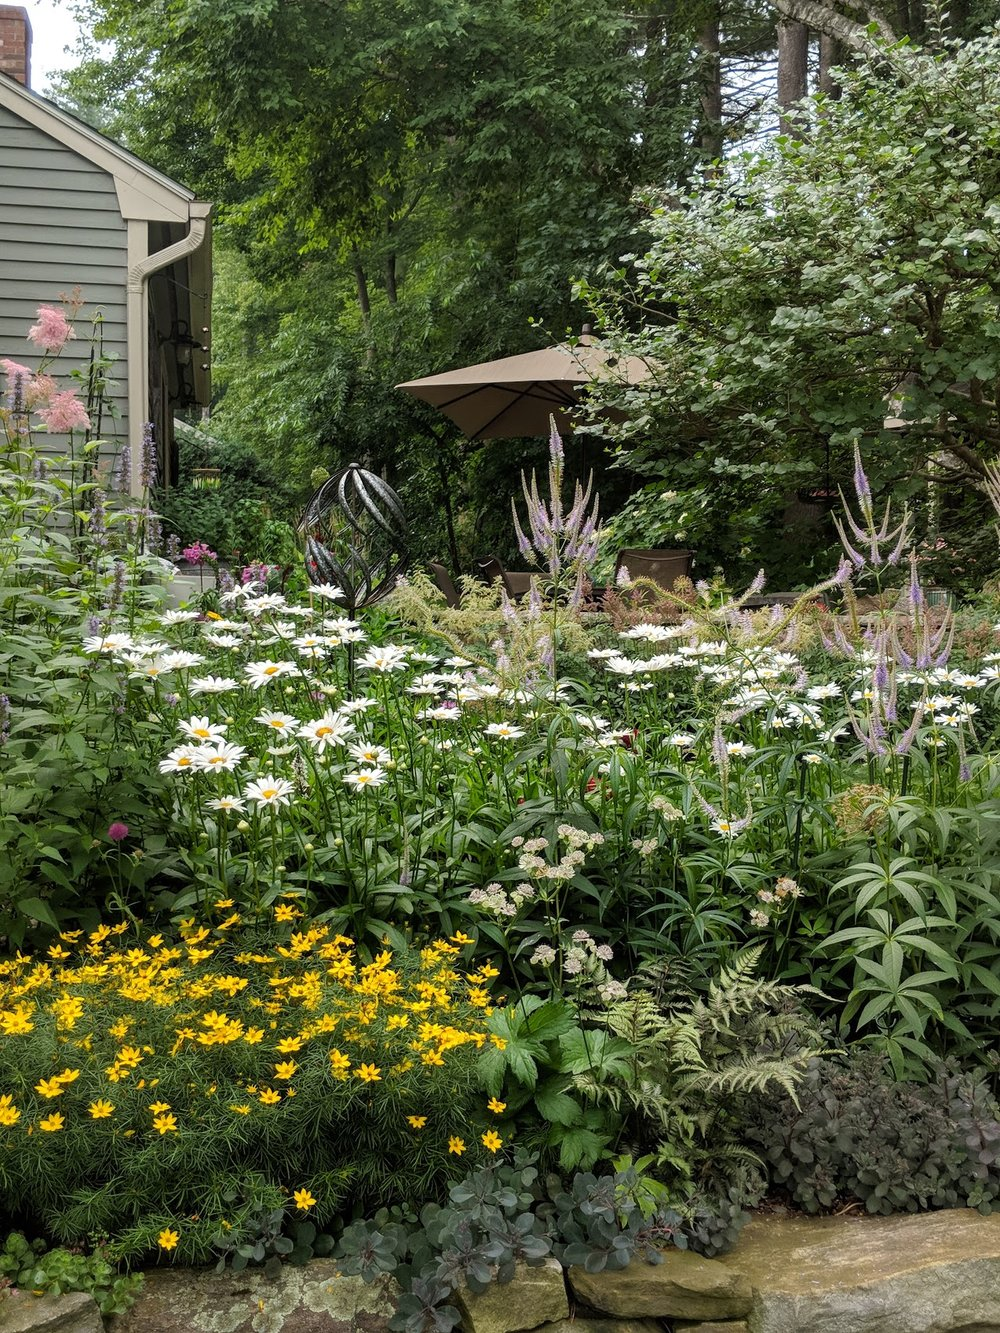 July 16: Veronicastrum 'Fascination' candelabras add height and drama among the Shasta daisies